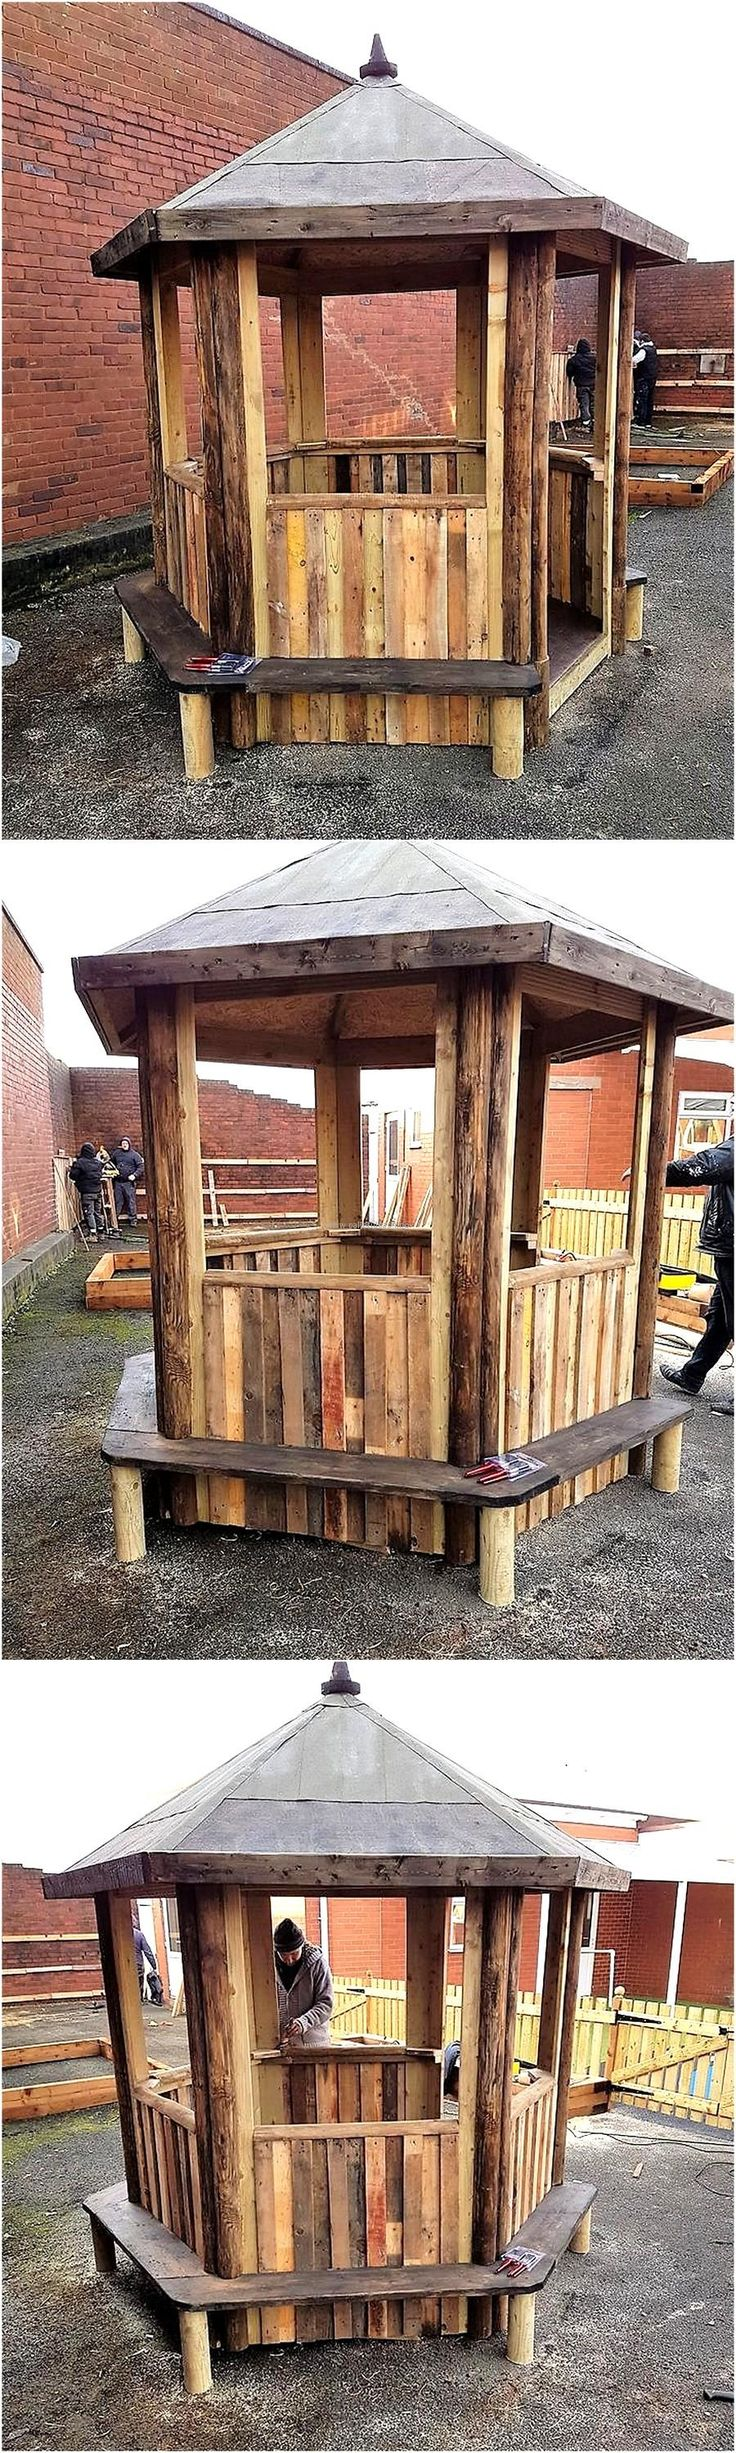 Playing house diy kid - Creating A Playhouse For Kids At Home Eliminates The Worries Of The Parents As The Kids